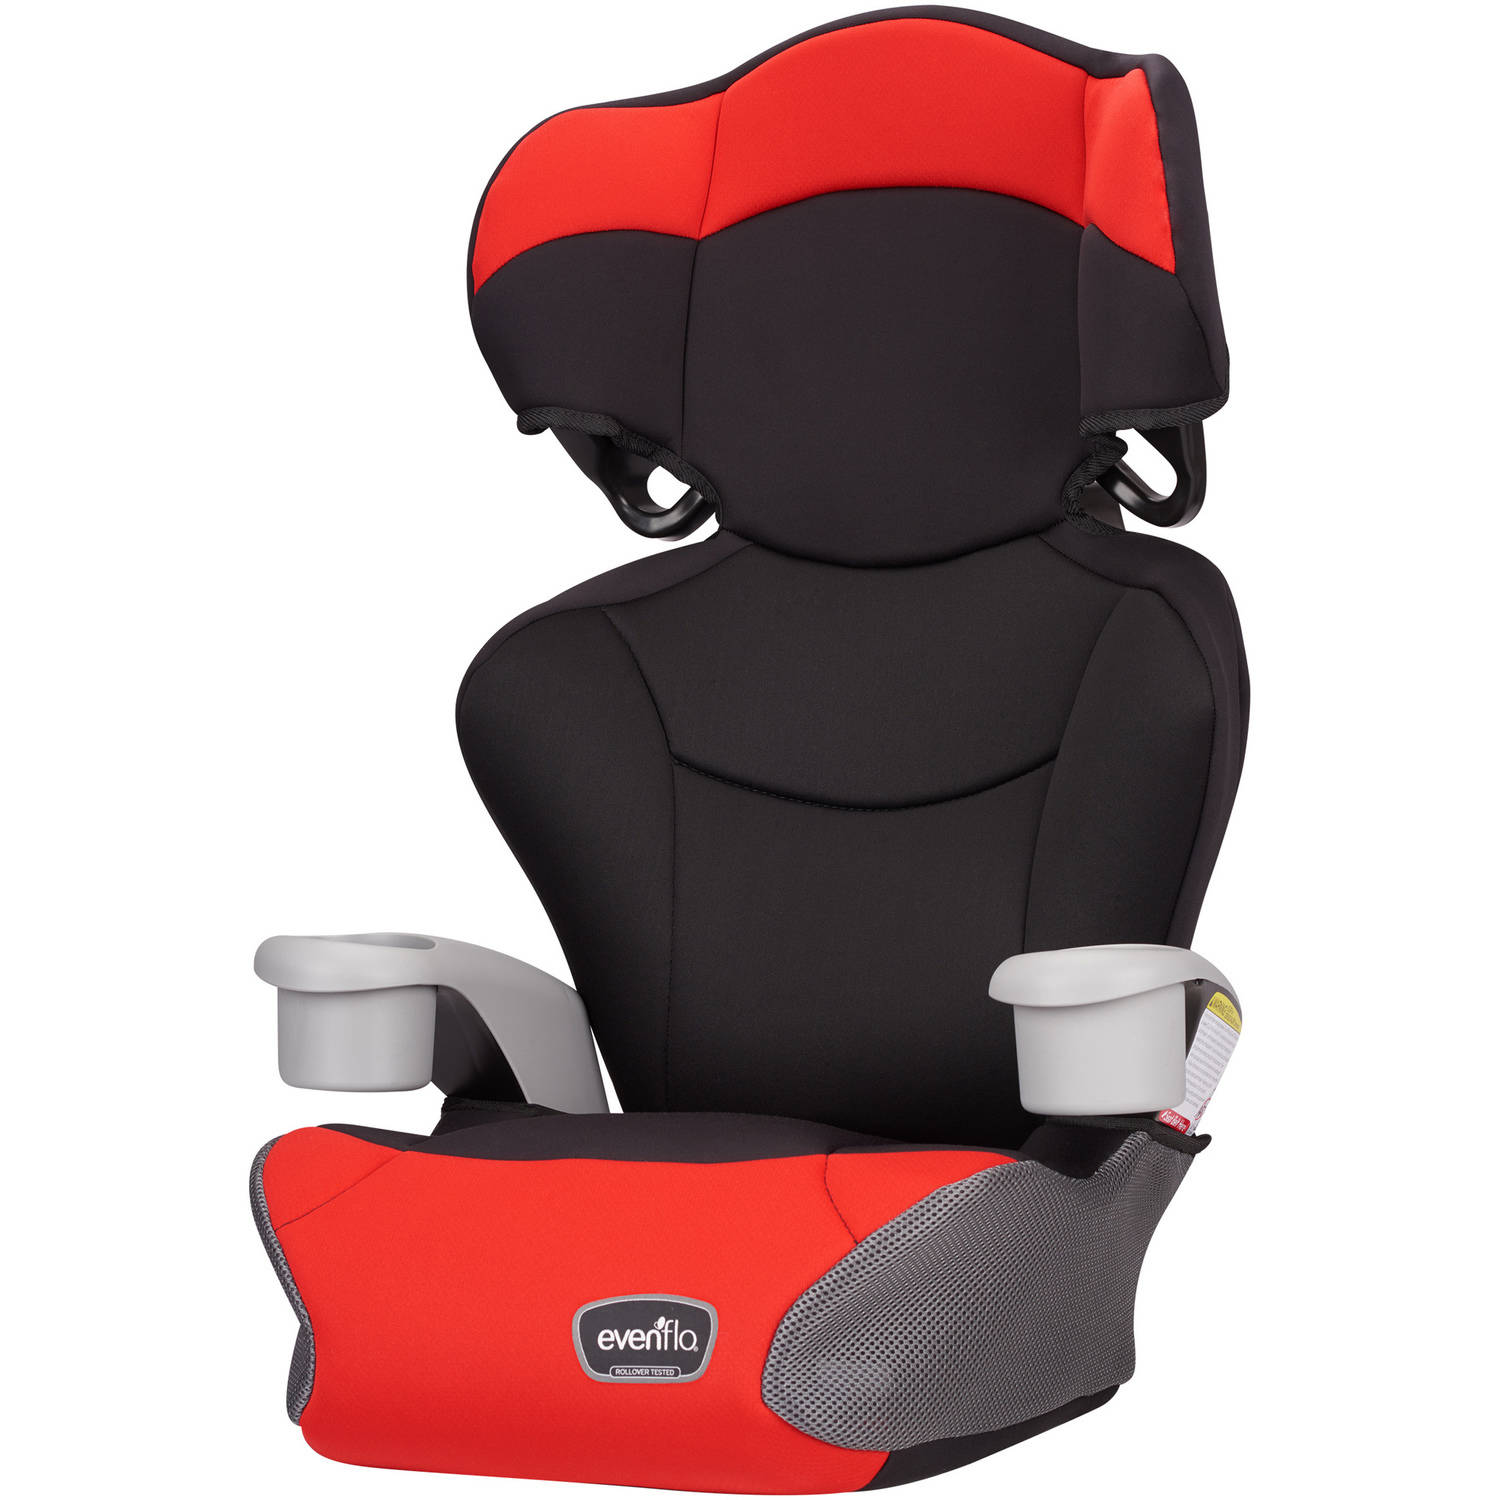 Evenflo Big Kid High-Back Booster Car Seat, Cardinal Red